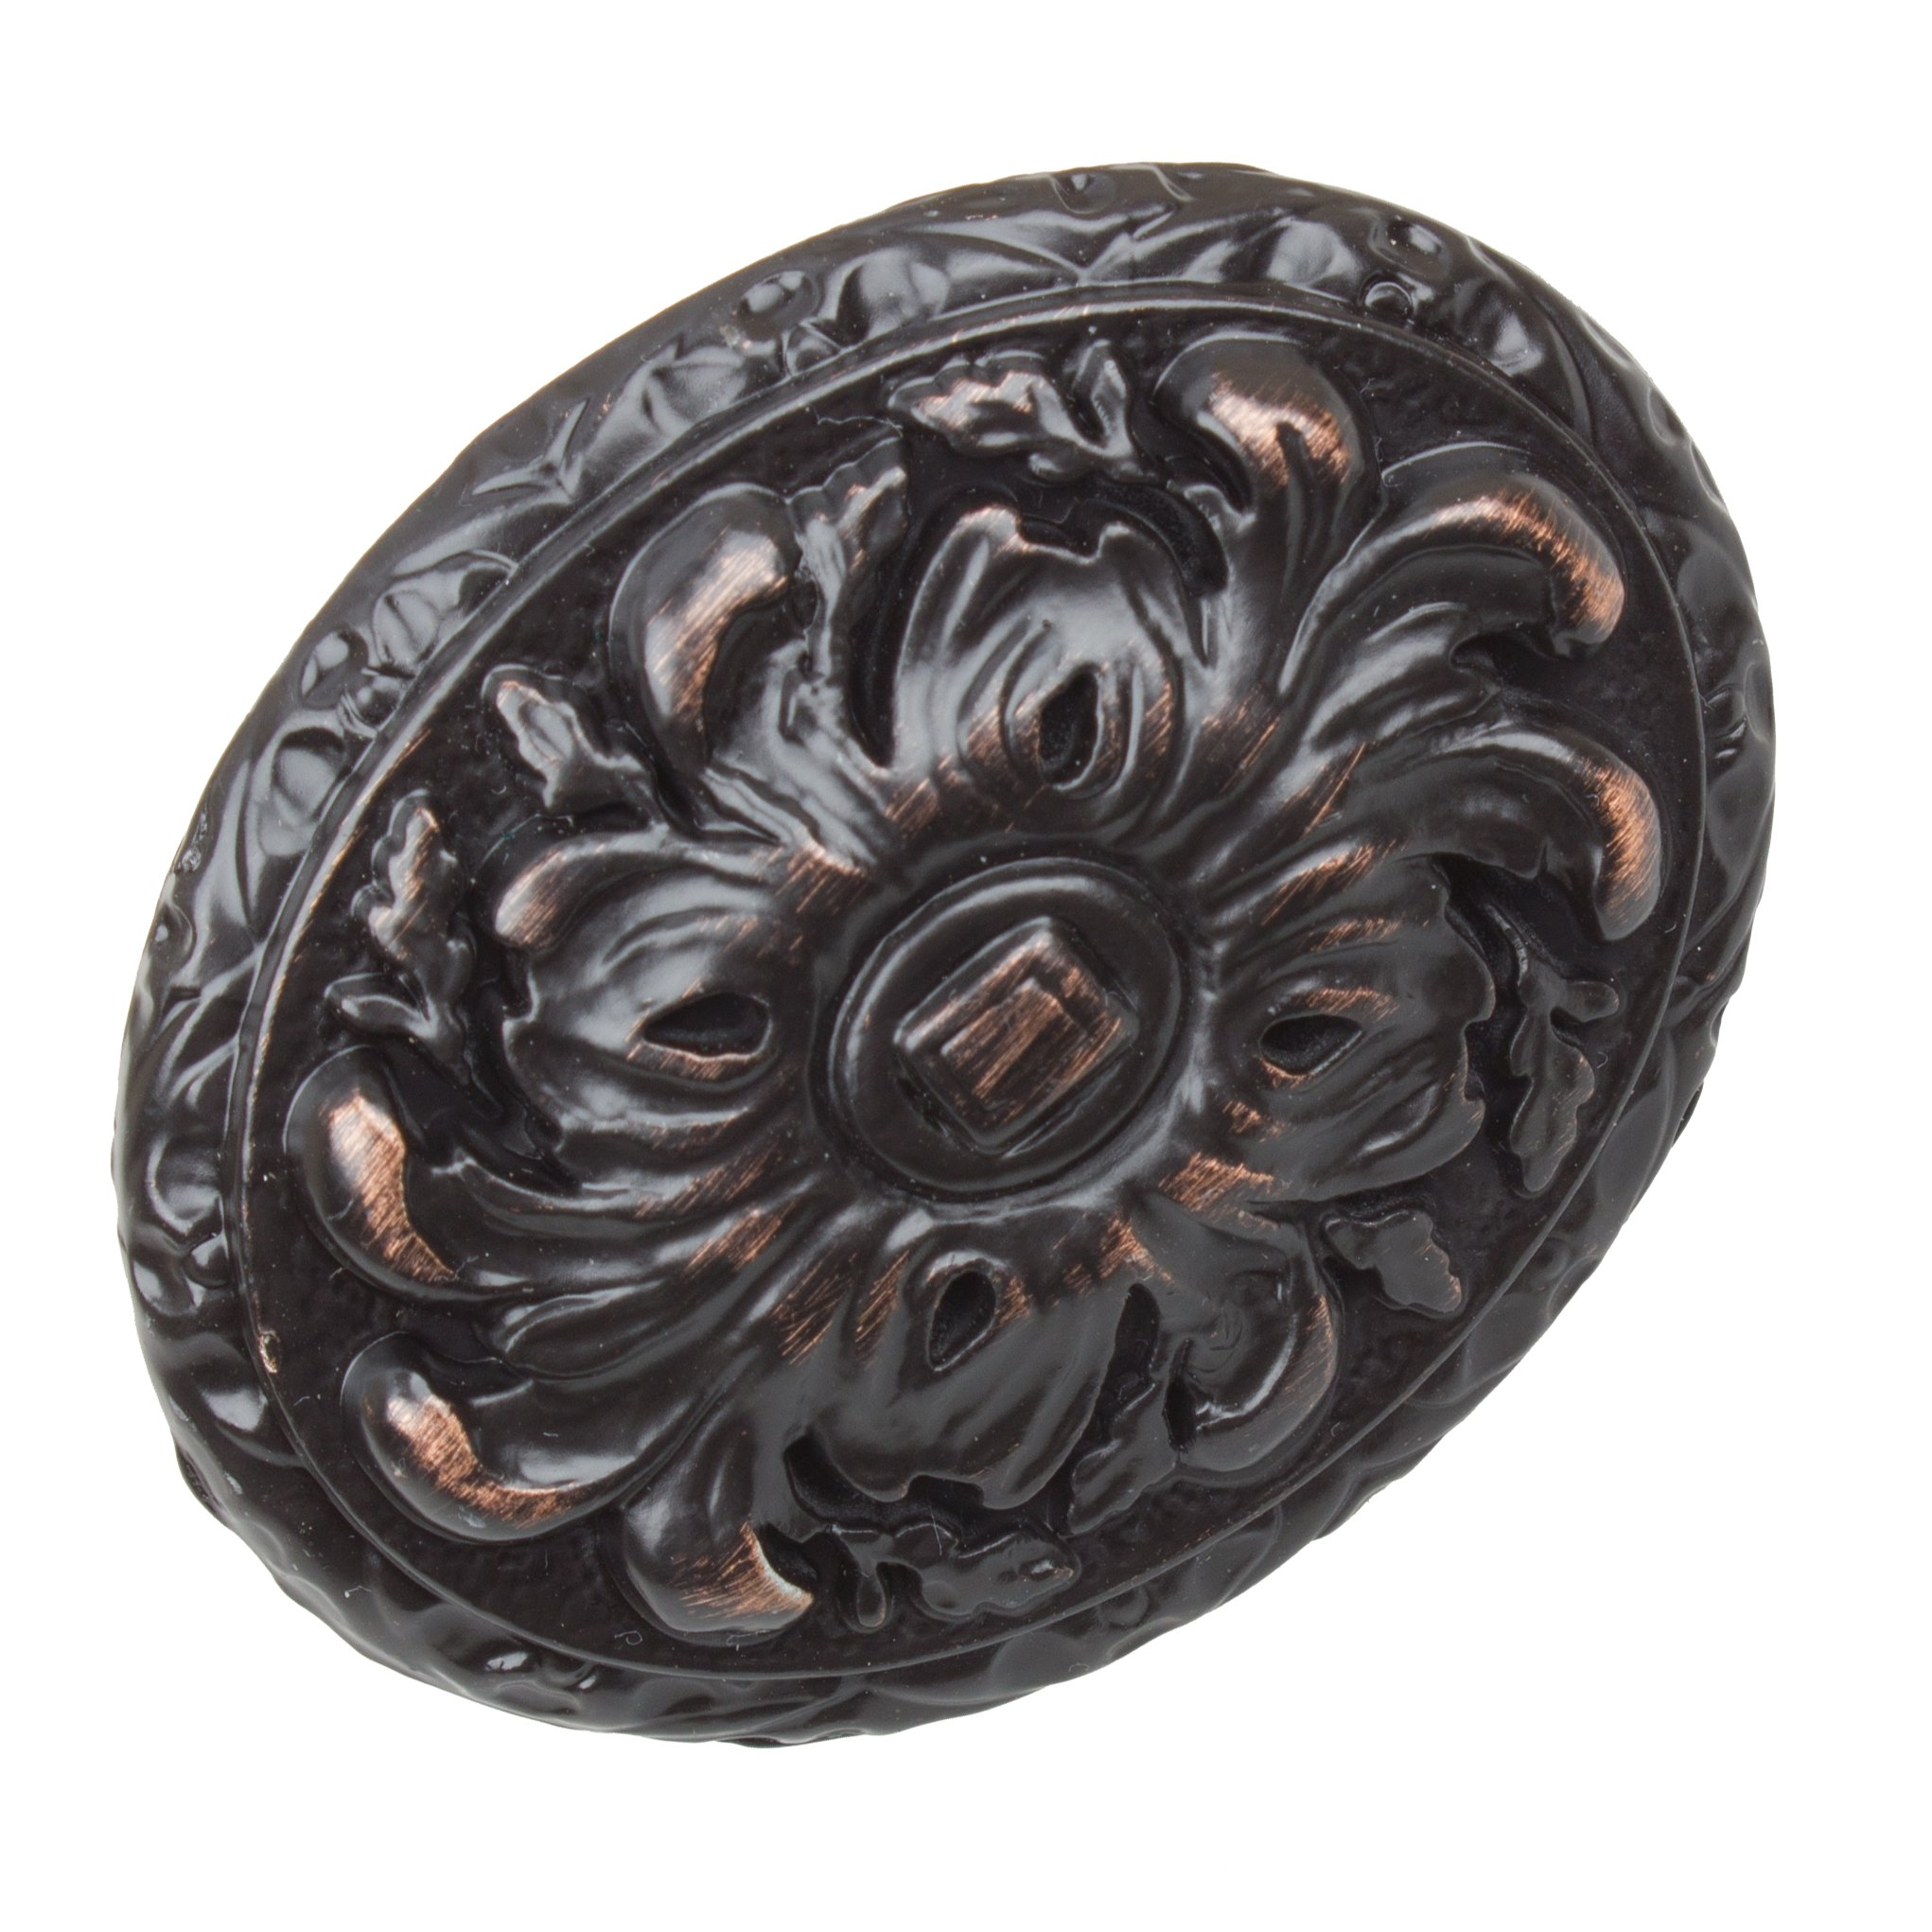 GlideRite Hardware 5710-ORB-50 Old World Ornate Oval Cabinet Knobs, 50 Pack, 2'', Oil Rubbed Bronze by GlideRite Hardware